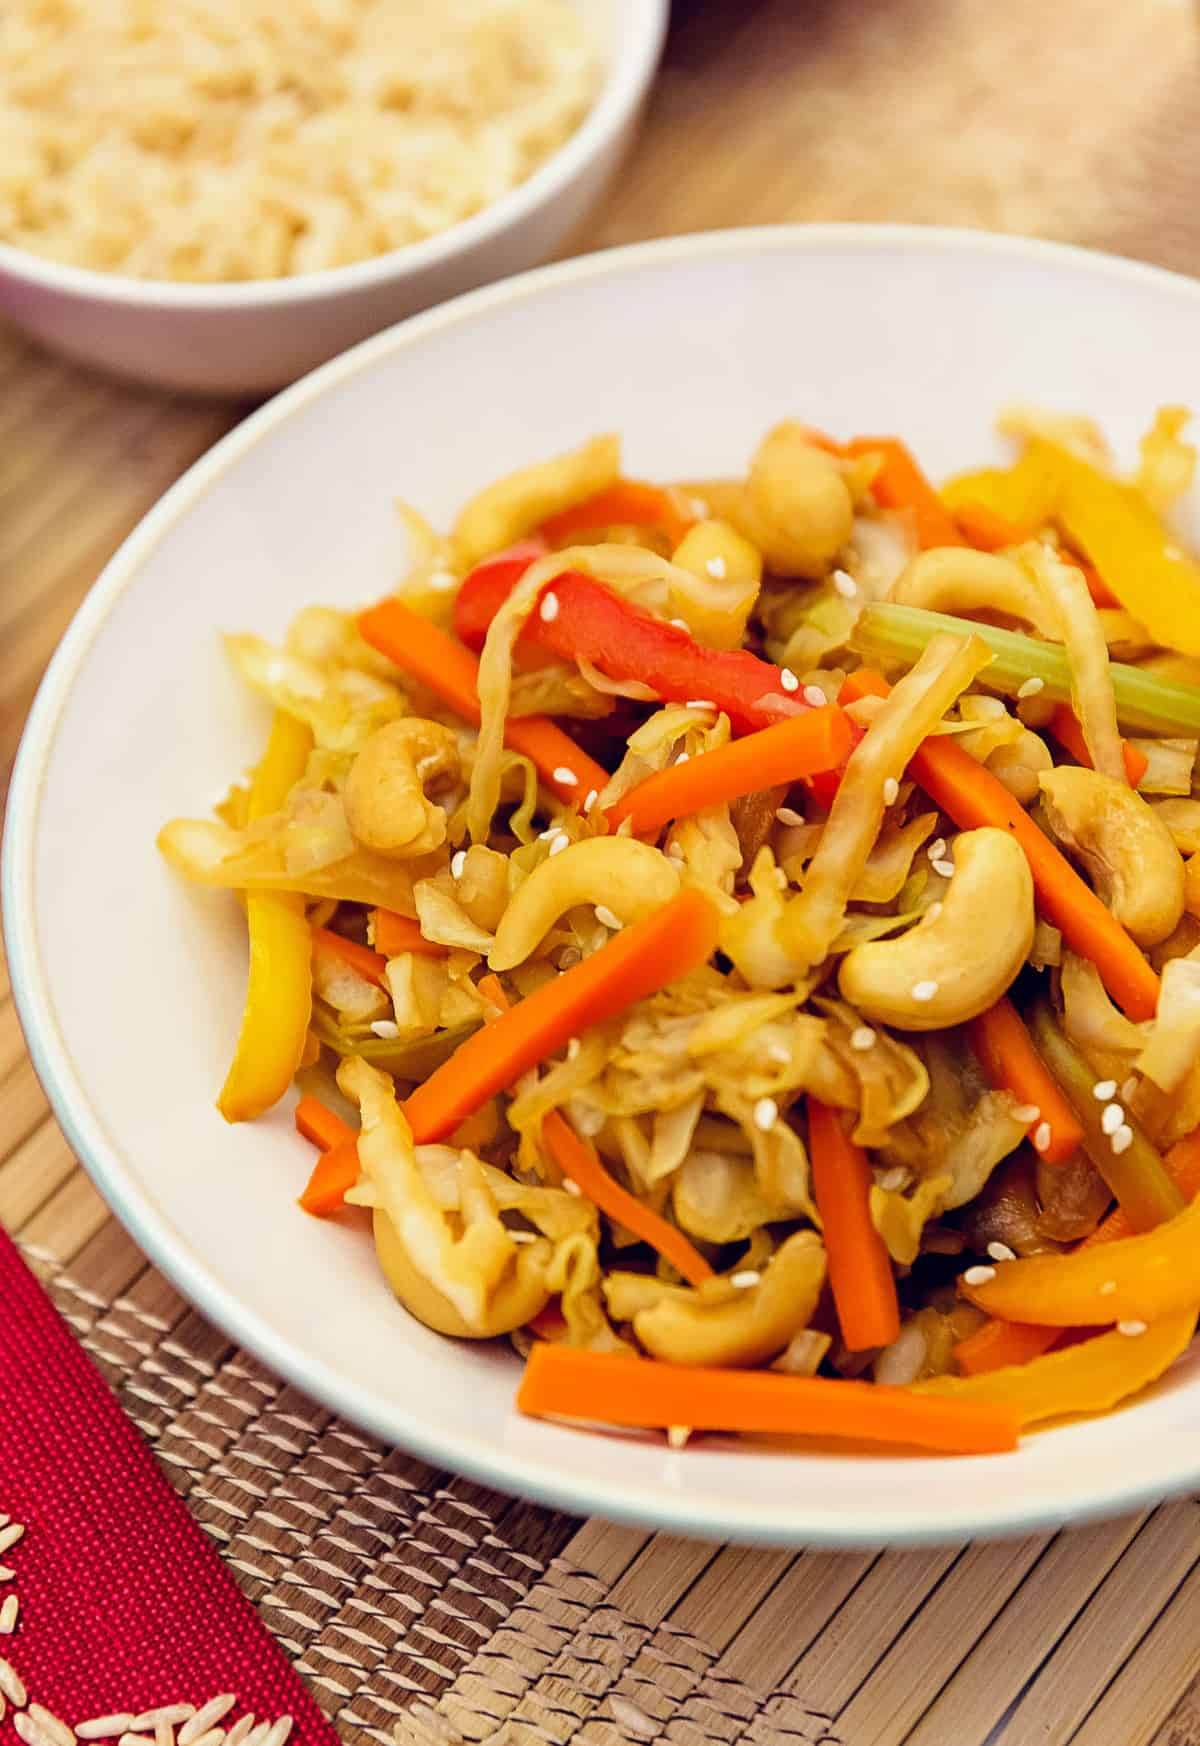 Cashew cabbage stir fry monkey and me kitchen adventures whole food plant based cashew cabbage stir fry the best cashew cabbage stir fry forumfinder Choice Image